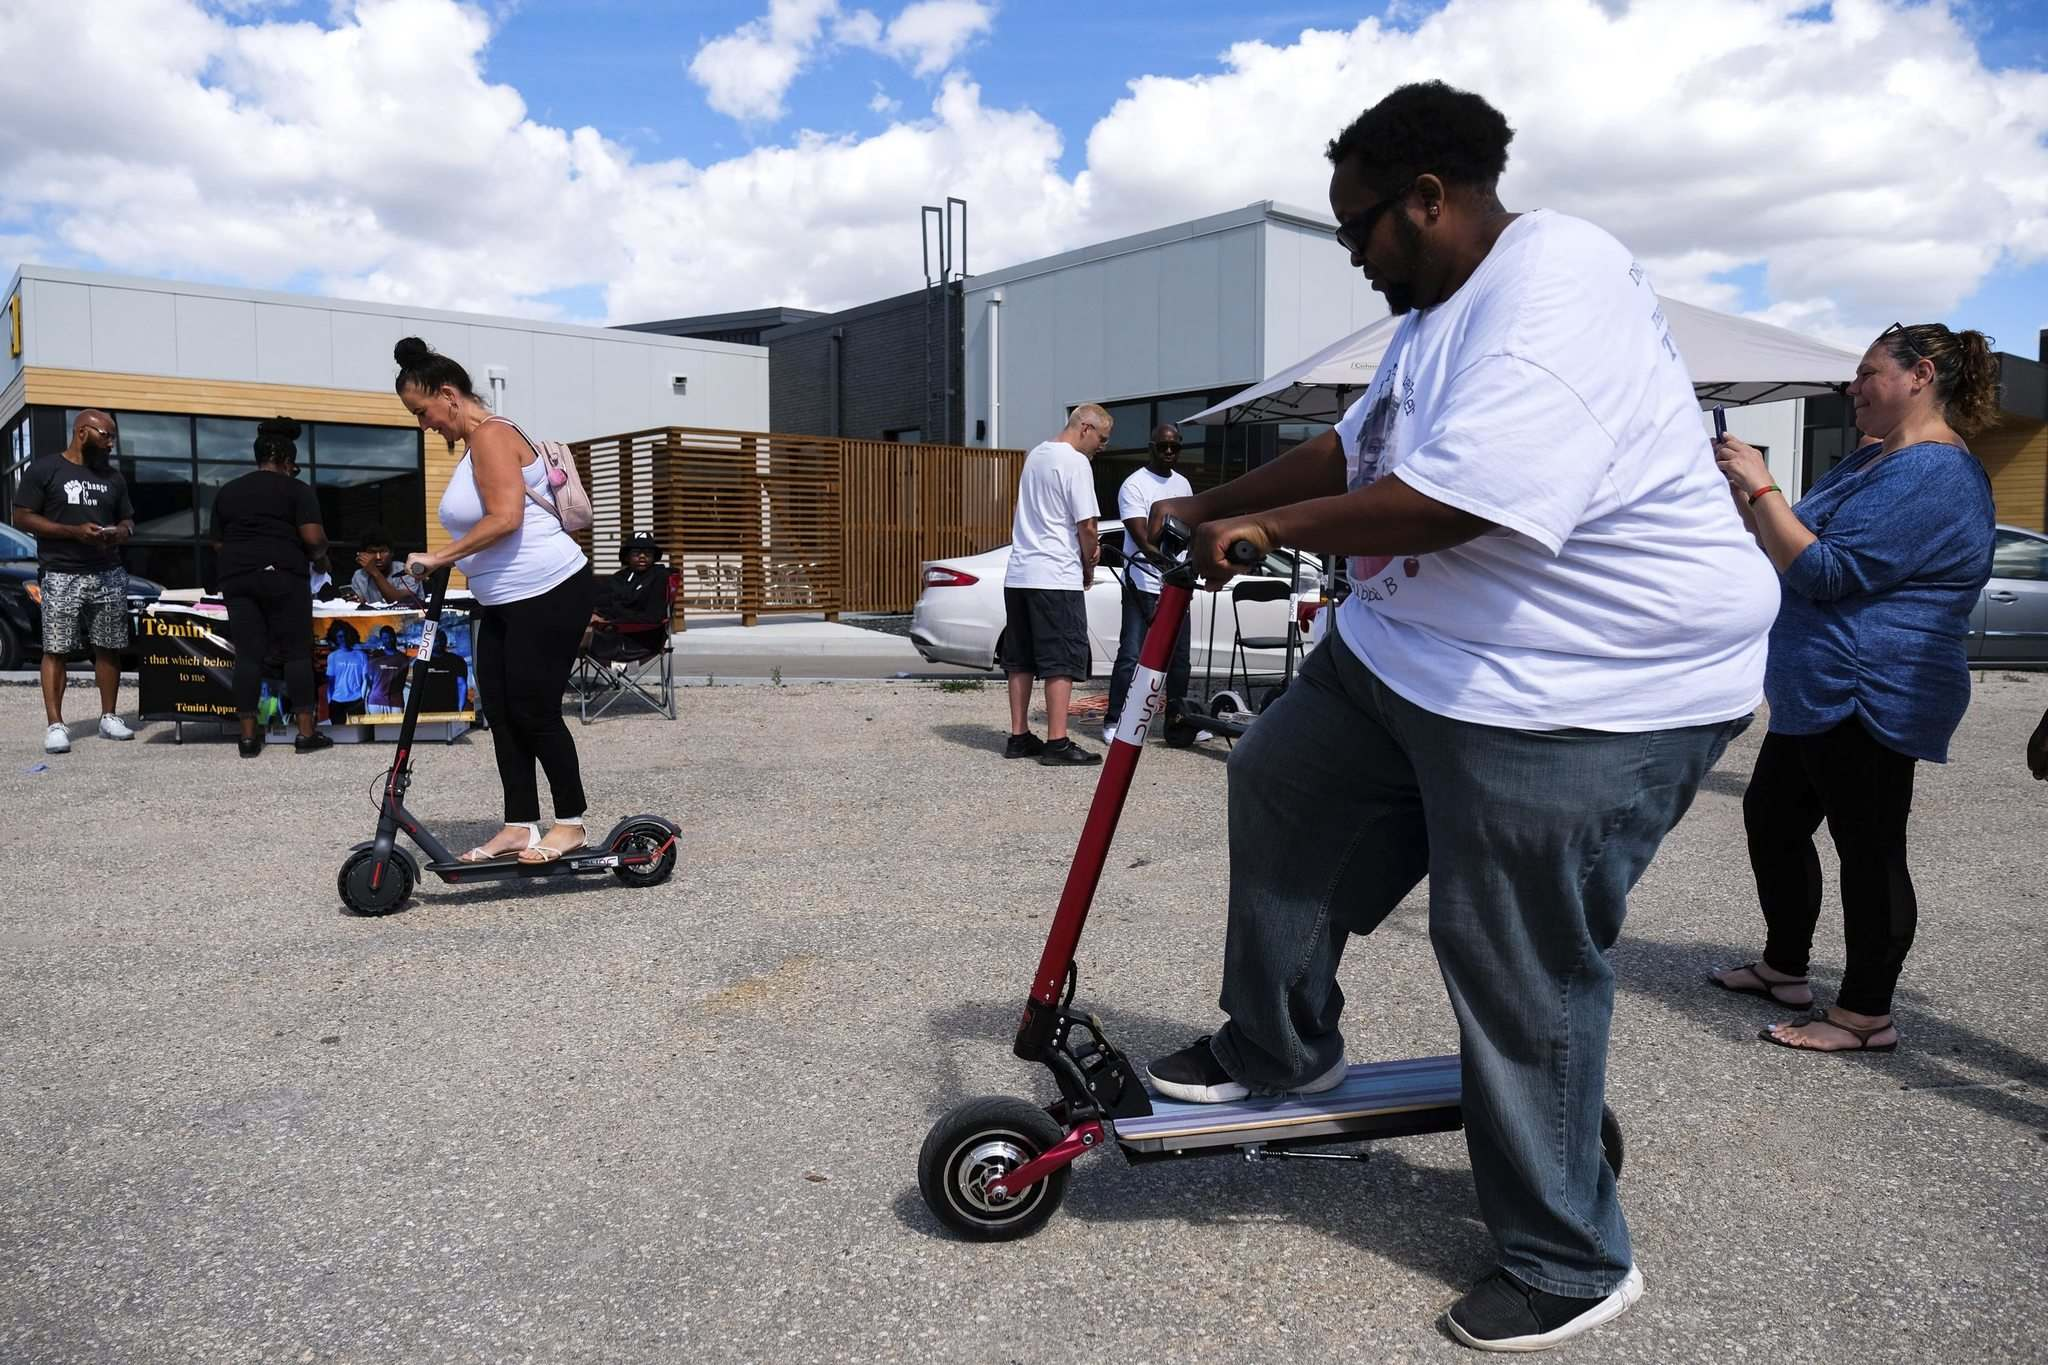 Bubba B the MC tests an electric scooter Saturday at The Block Party Vol. 1. (Daniel Crump / Winnipeg Free Press)</p></p>